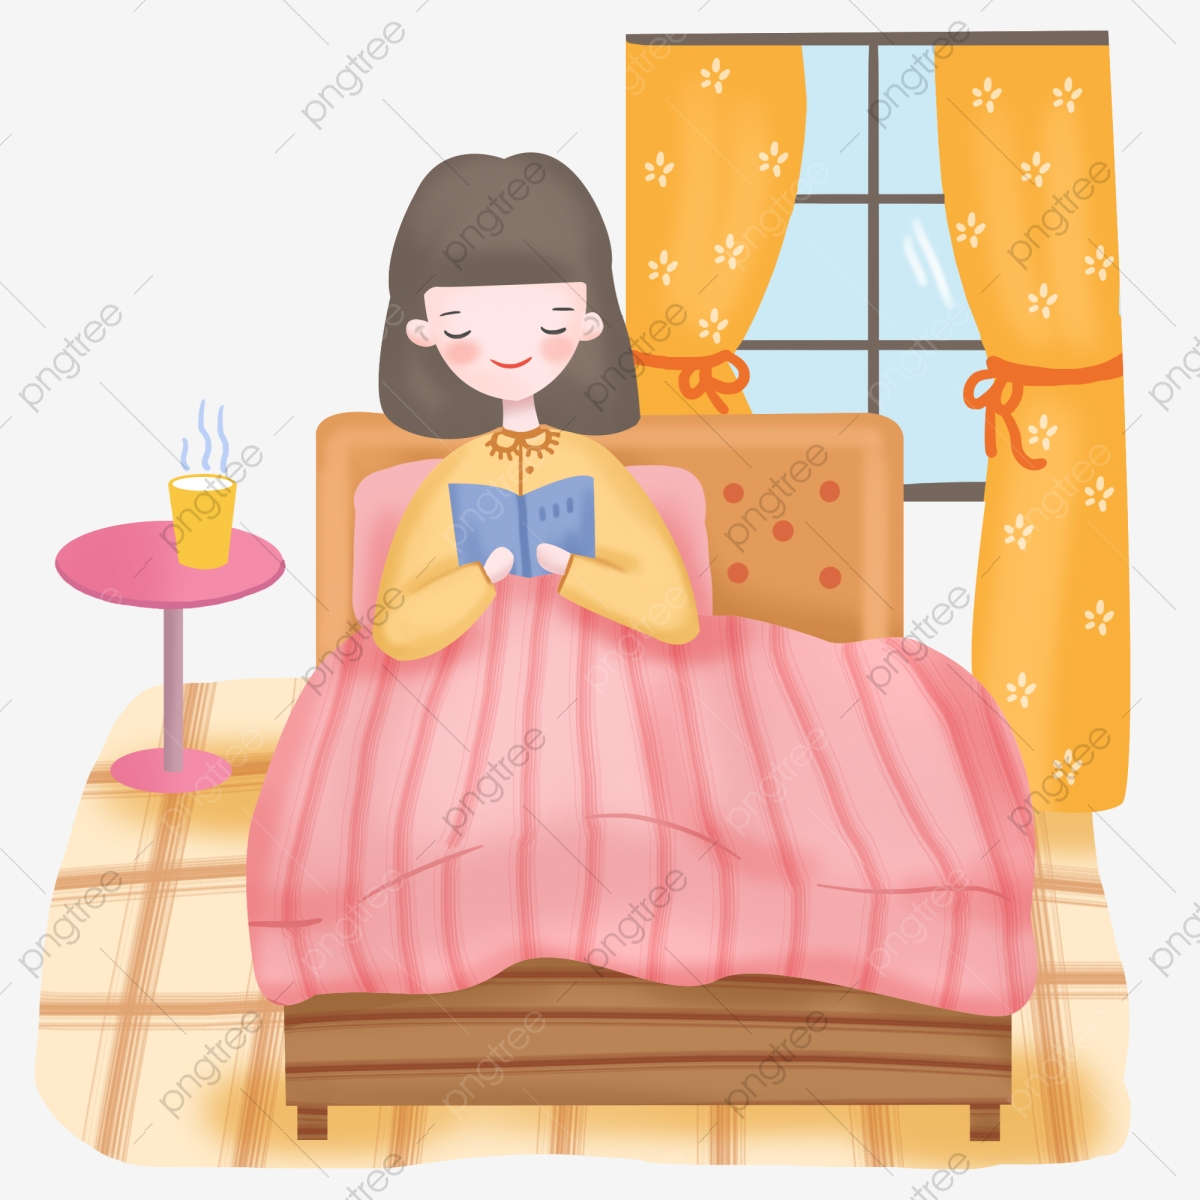 Quilt clipart bed quilt. Hand drawing a book